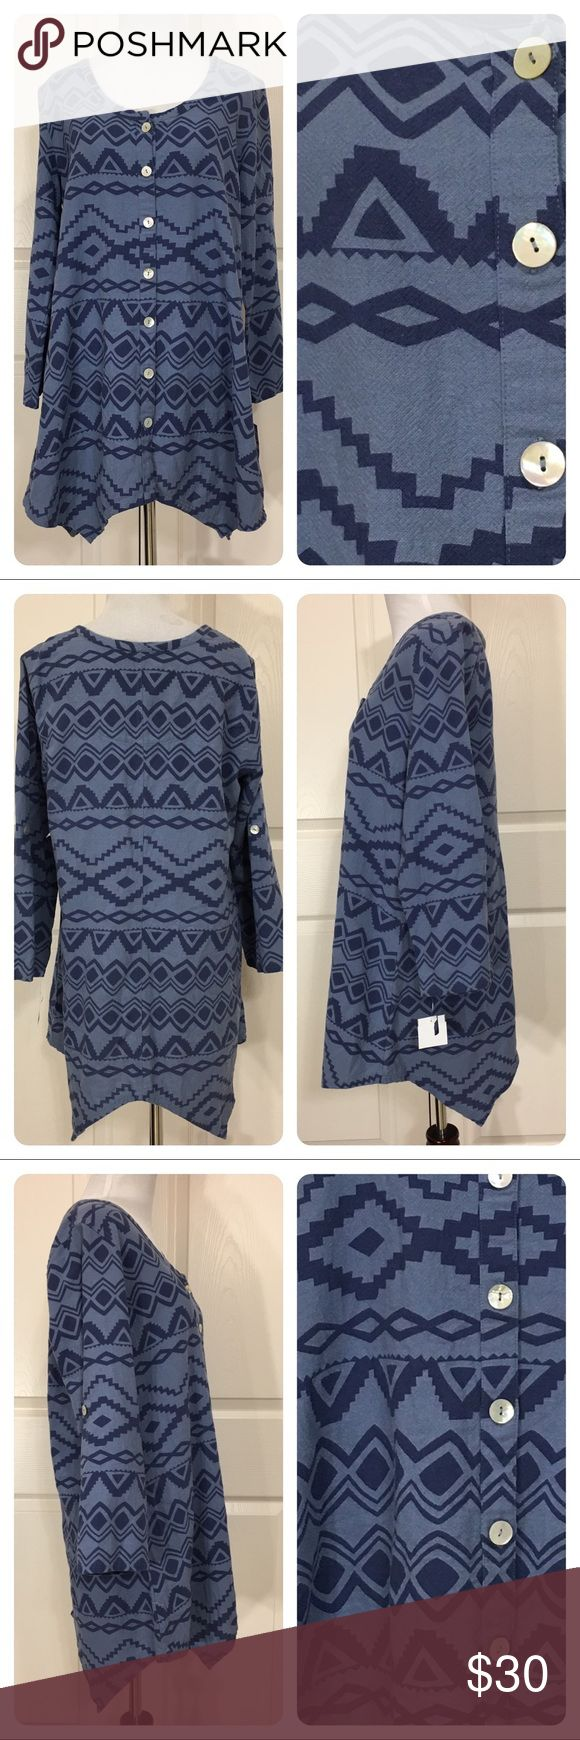 NWT! Soft Surroundings top New with tags from a secondary market store. Fun southwest print - blue on blue - top from Sof Surroundings. Asymmetric hem. Button front. No flaws noted. Soft Surroundings Tops